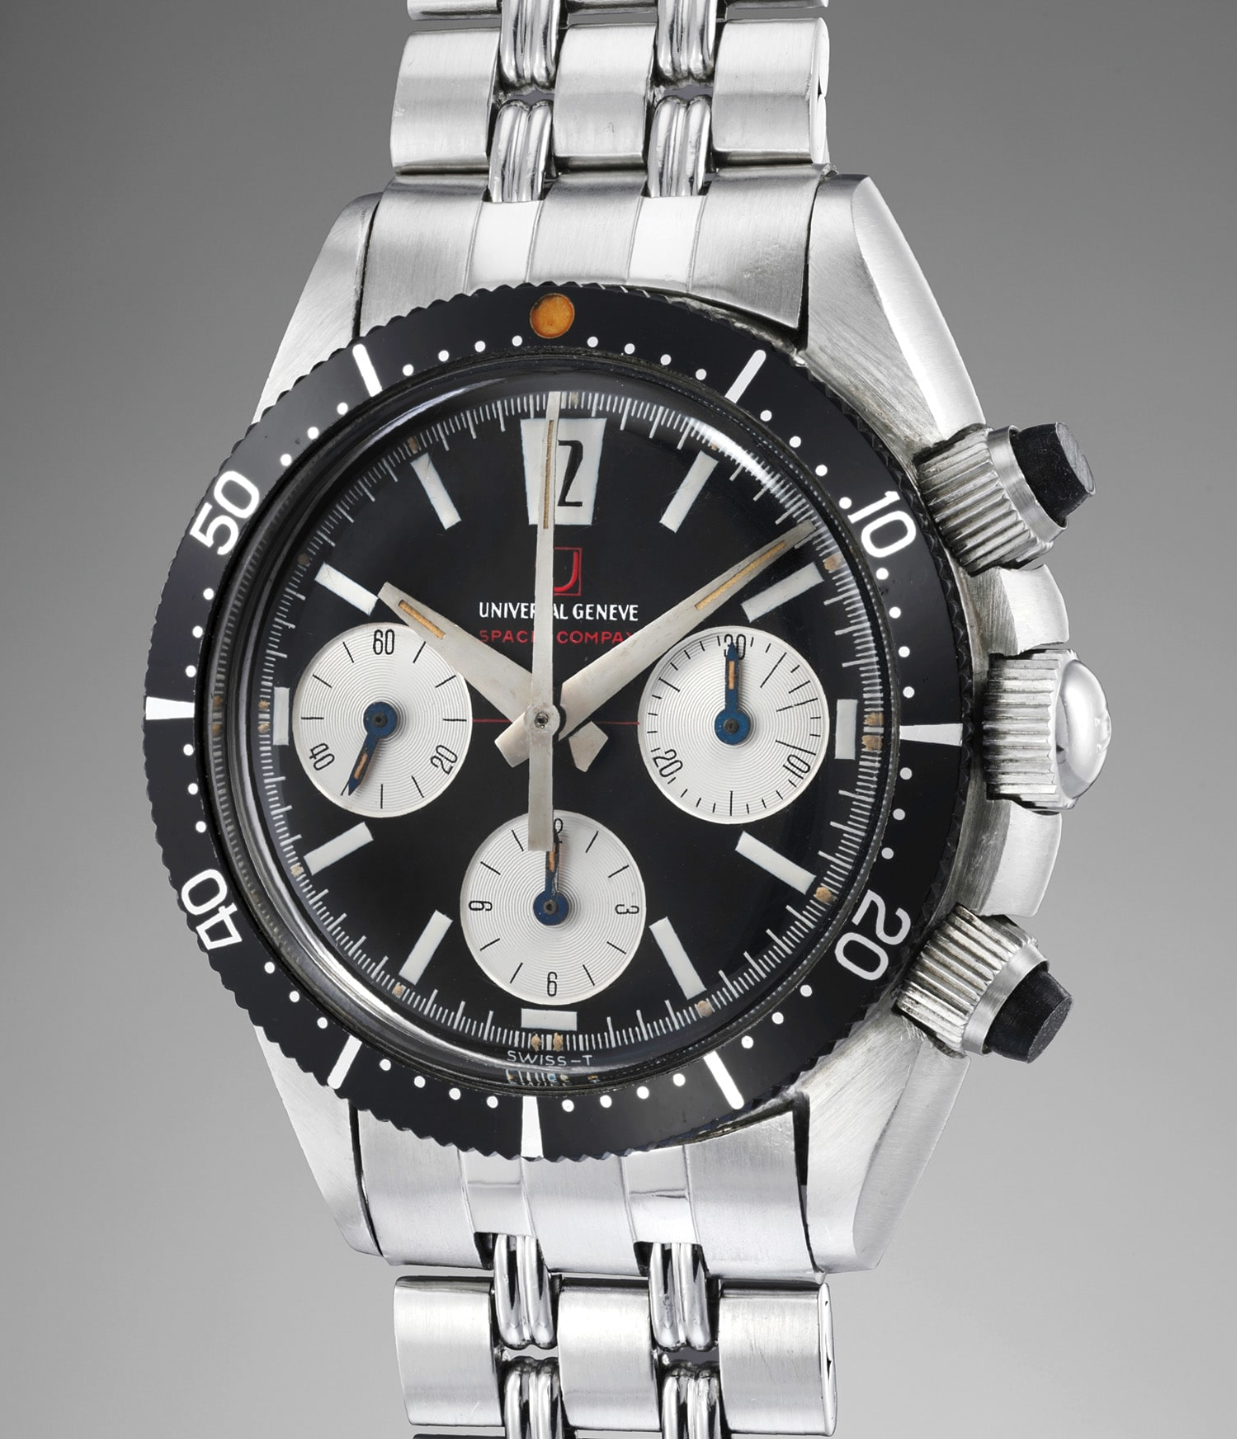 A Space-Compax ref. 885104/01by @Phillips